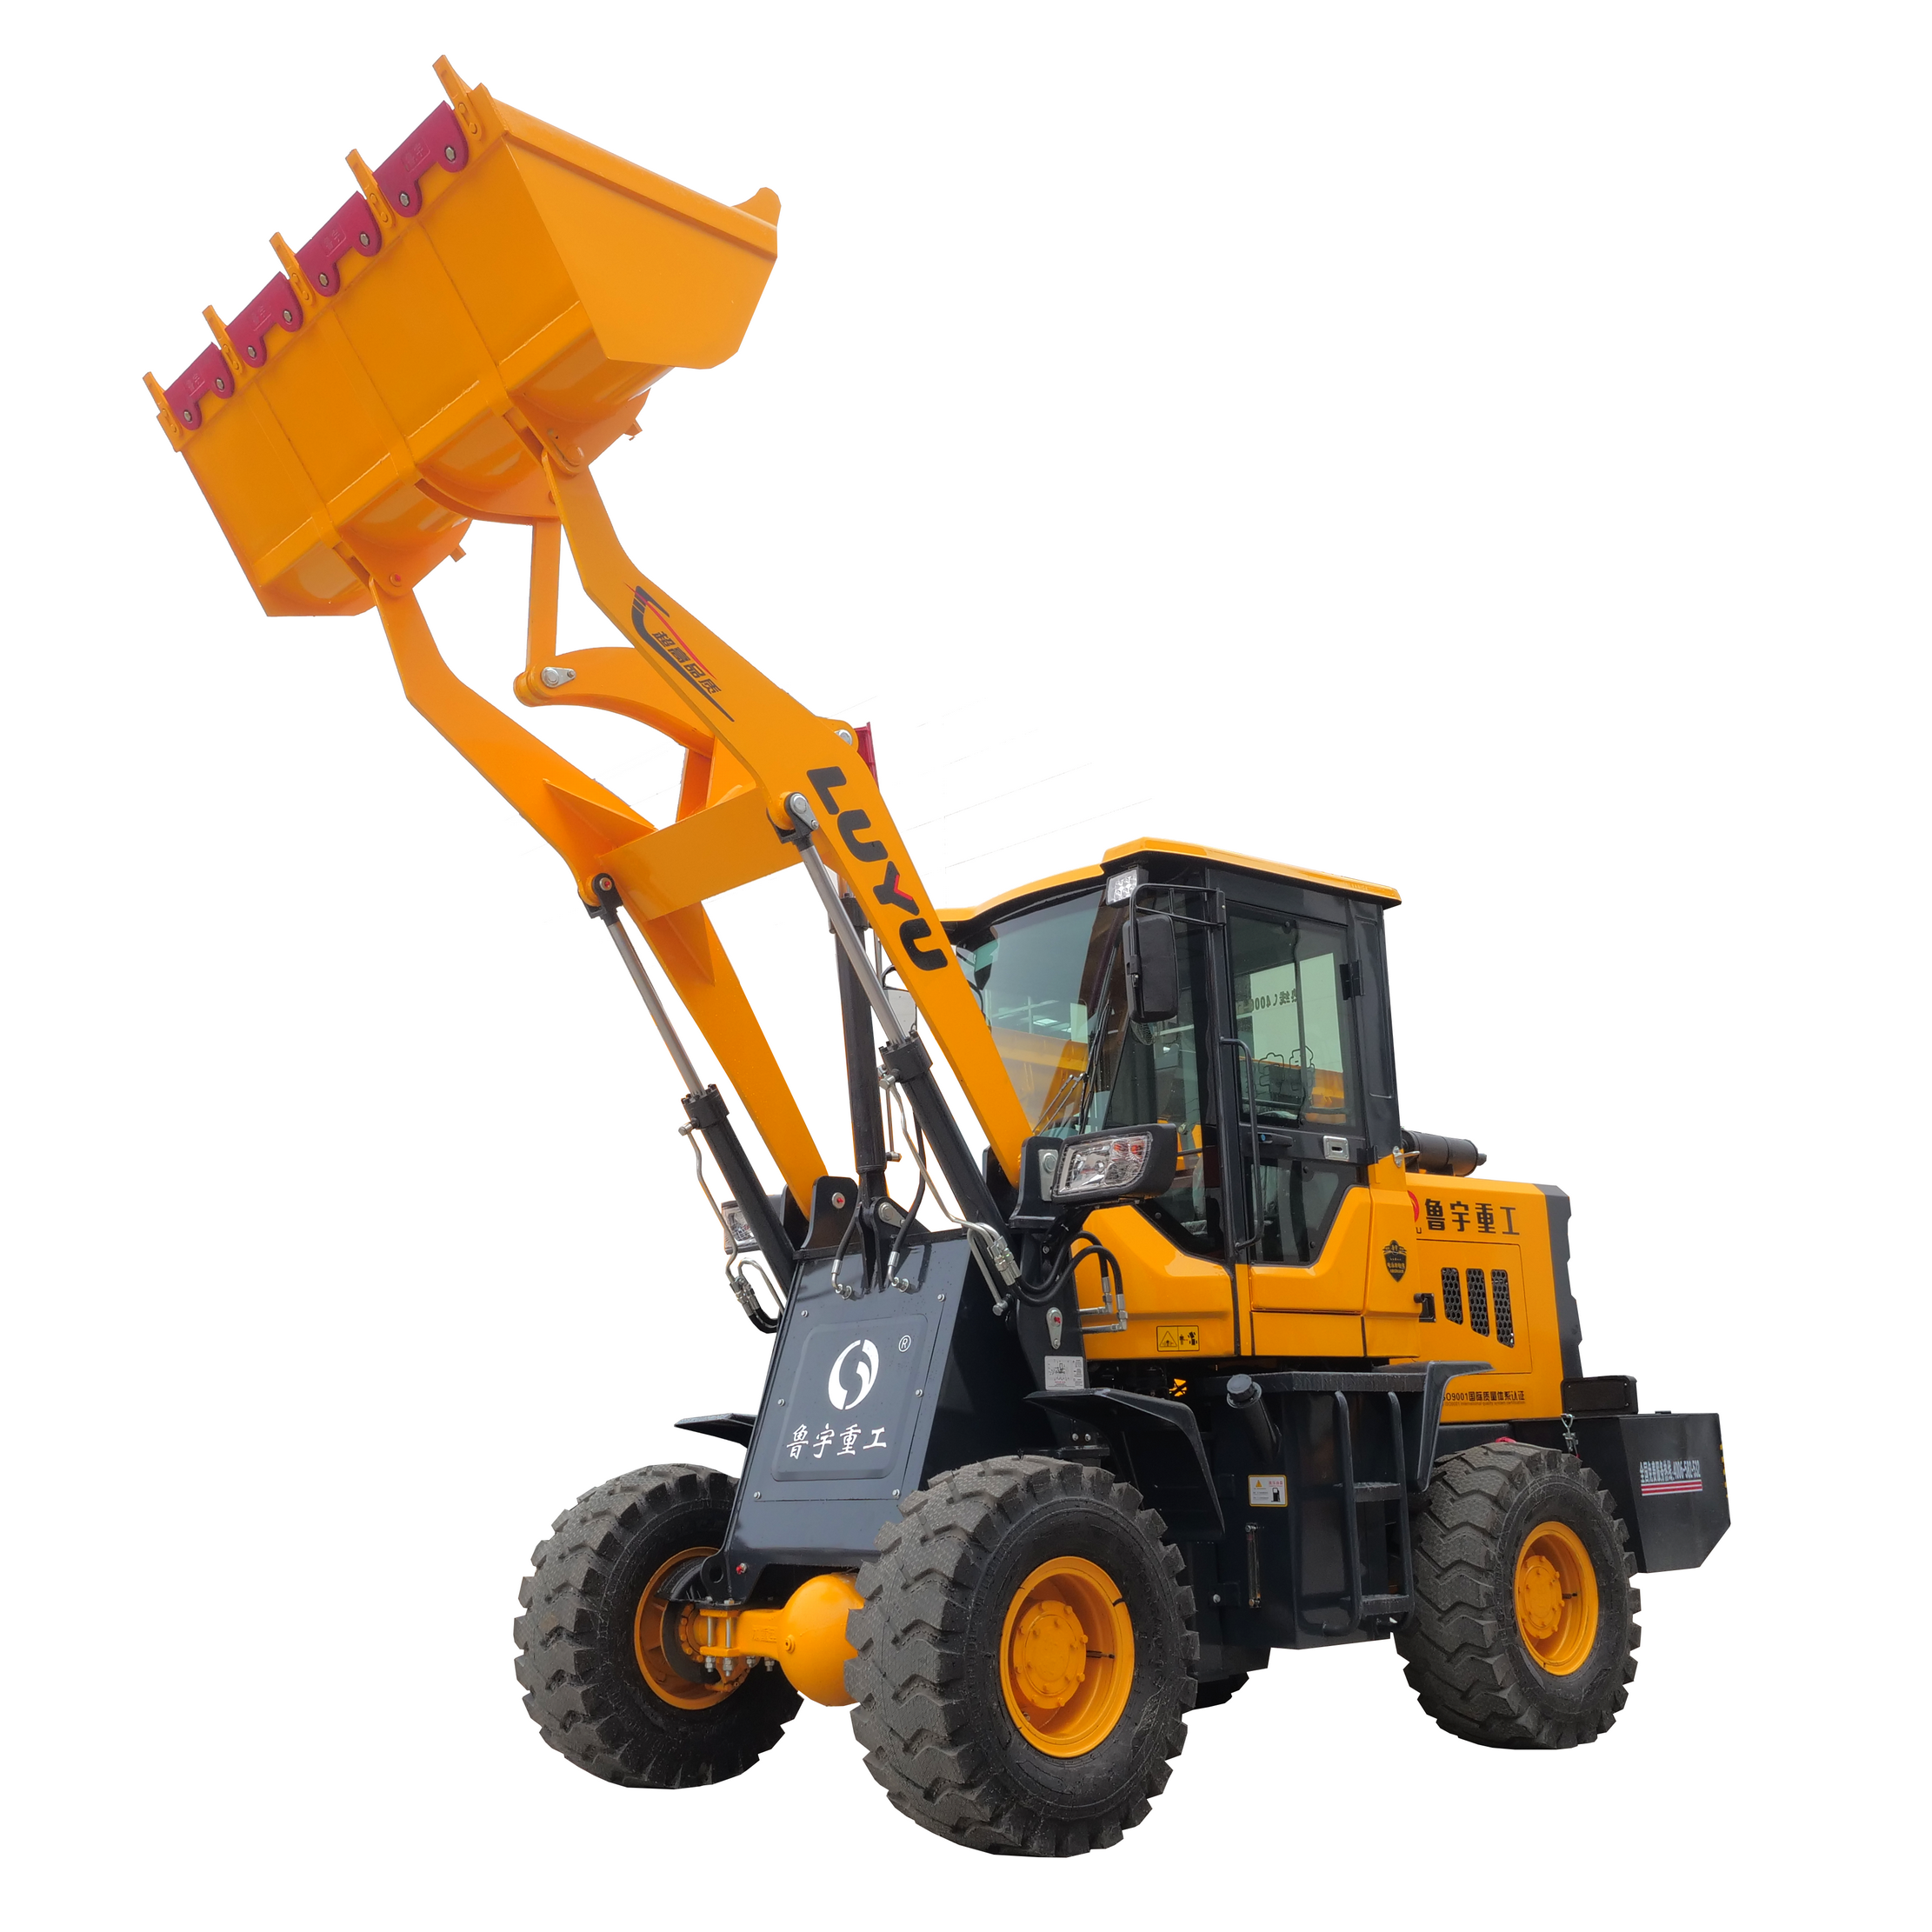 The world best-selling mini wheel loader the best brand loaders welcomes you to purchase